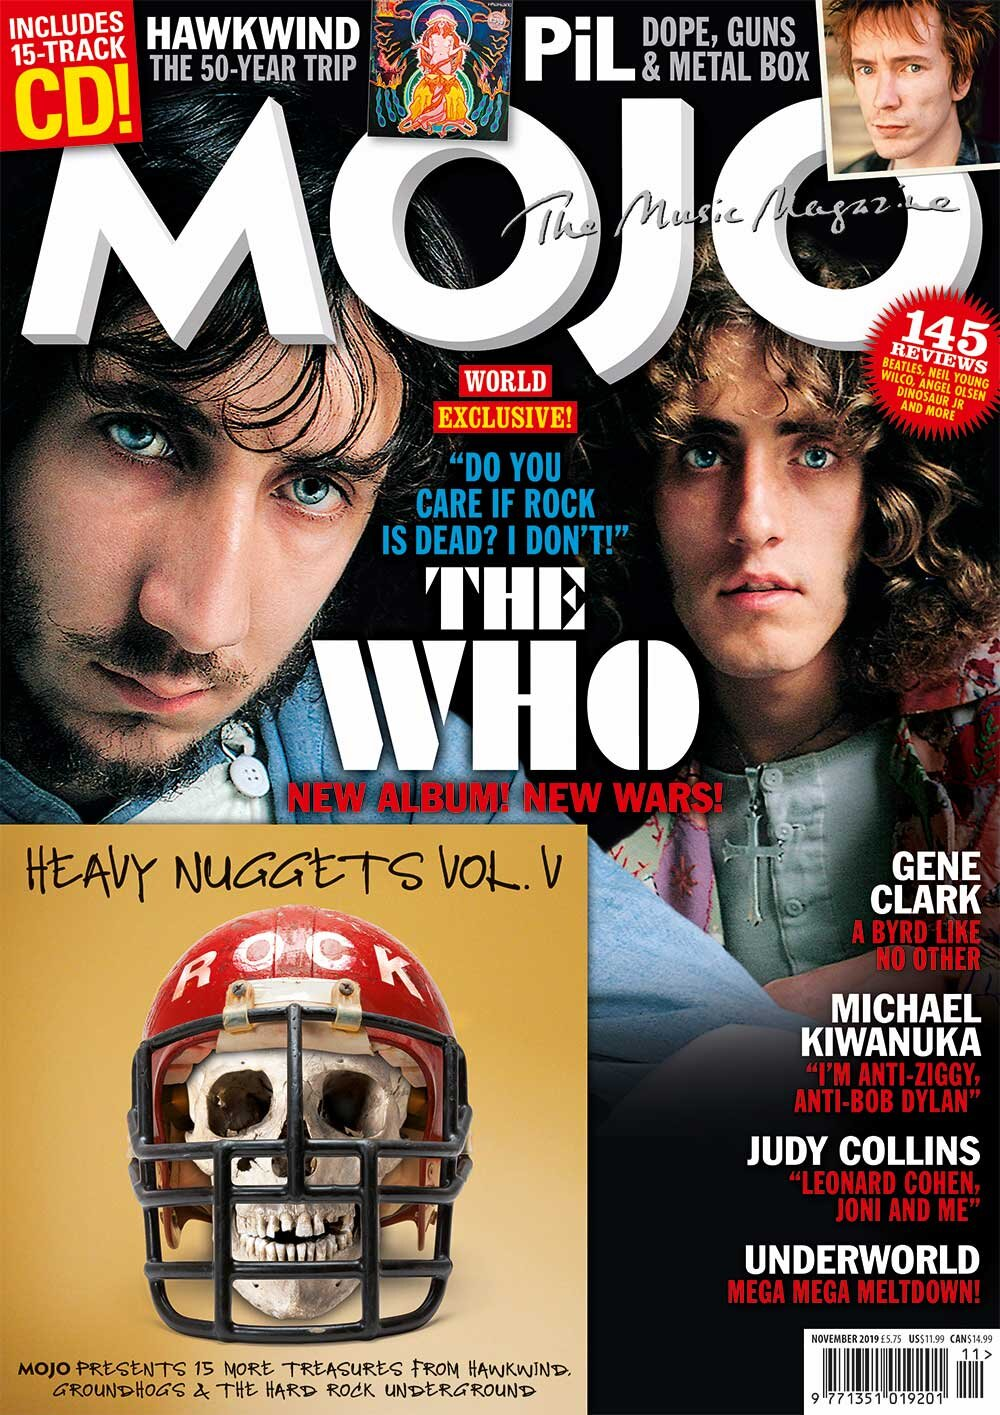 MOJO-312-cover-The-Who-1000.jpg